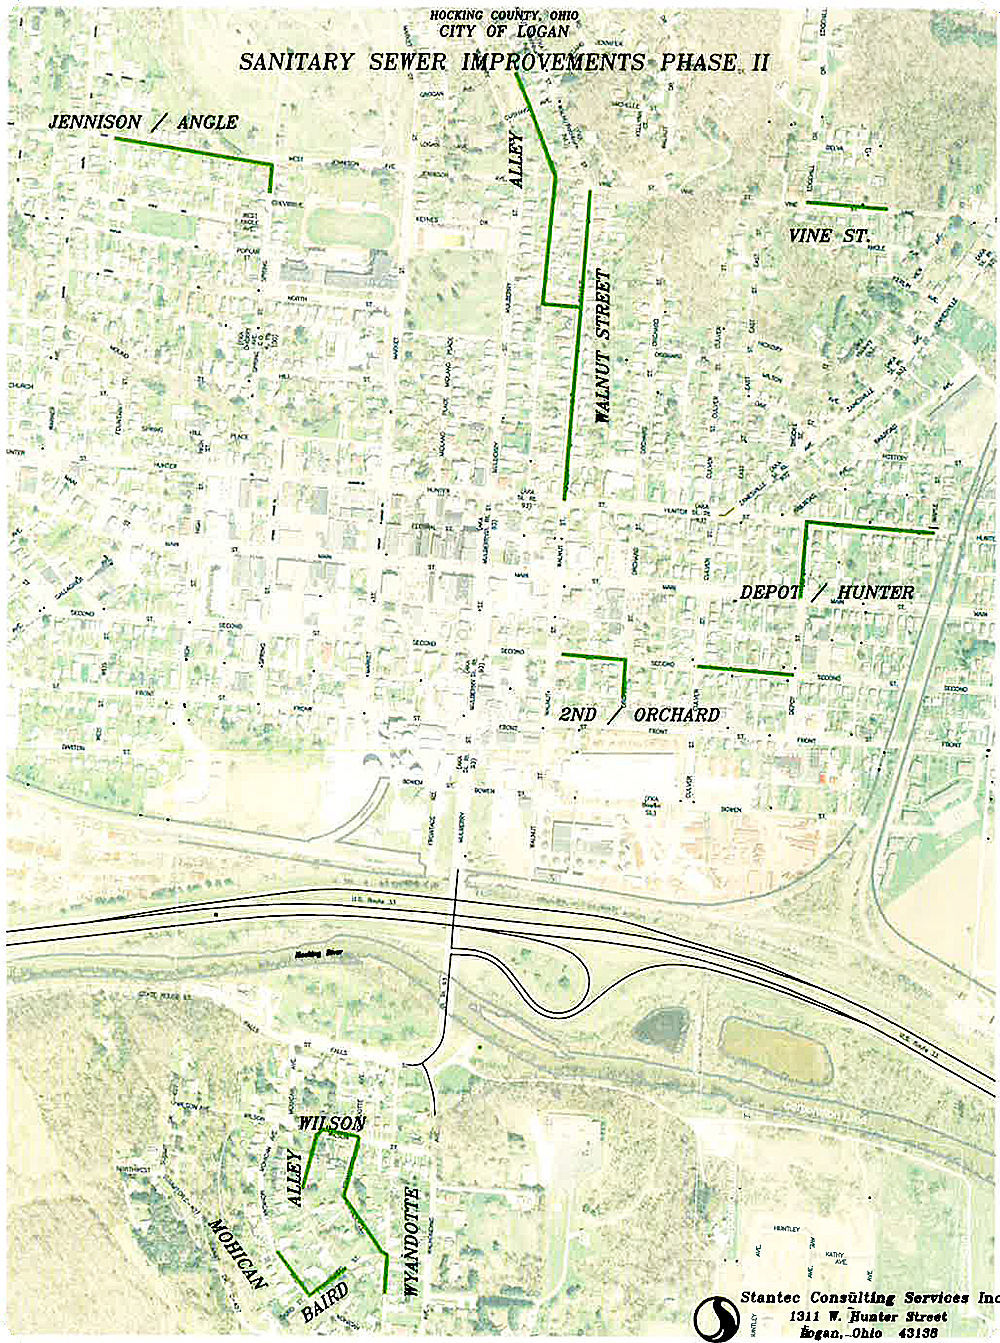 South County Sanitary Service : Final public hearing held on sanitary sewer improvements